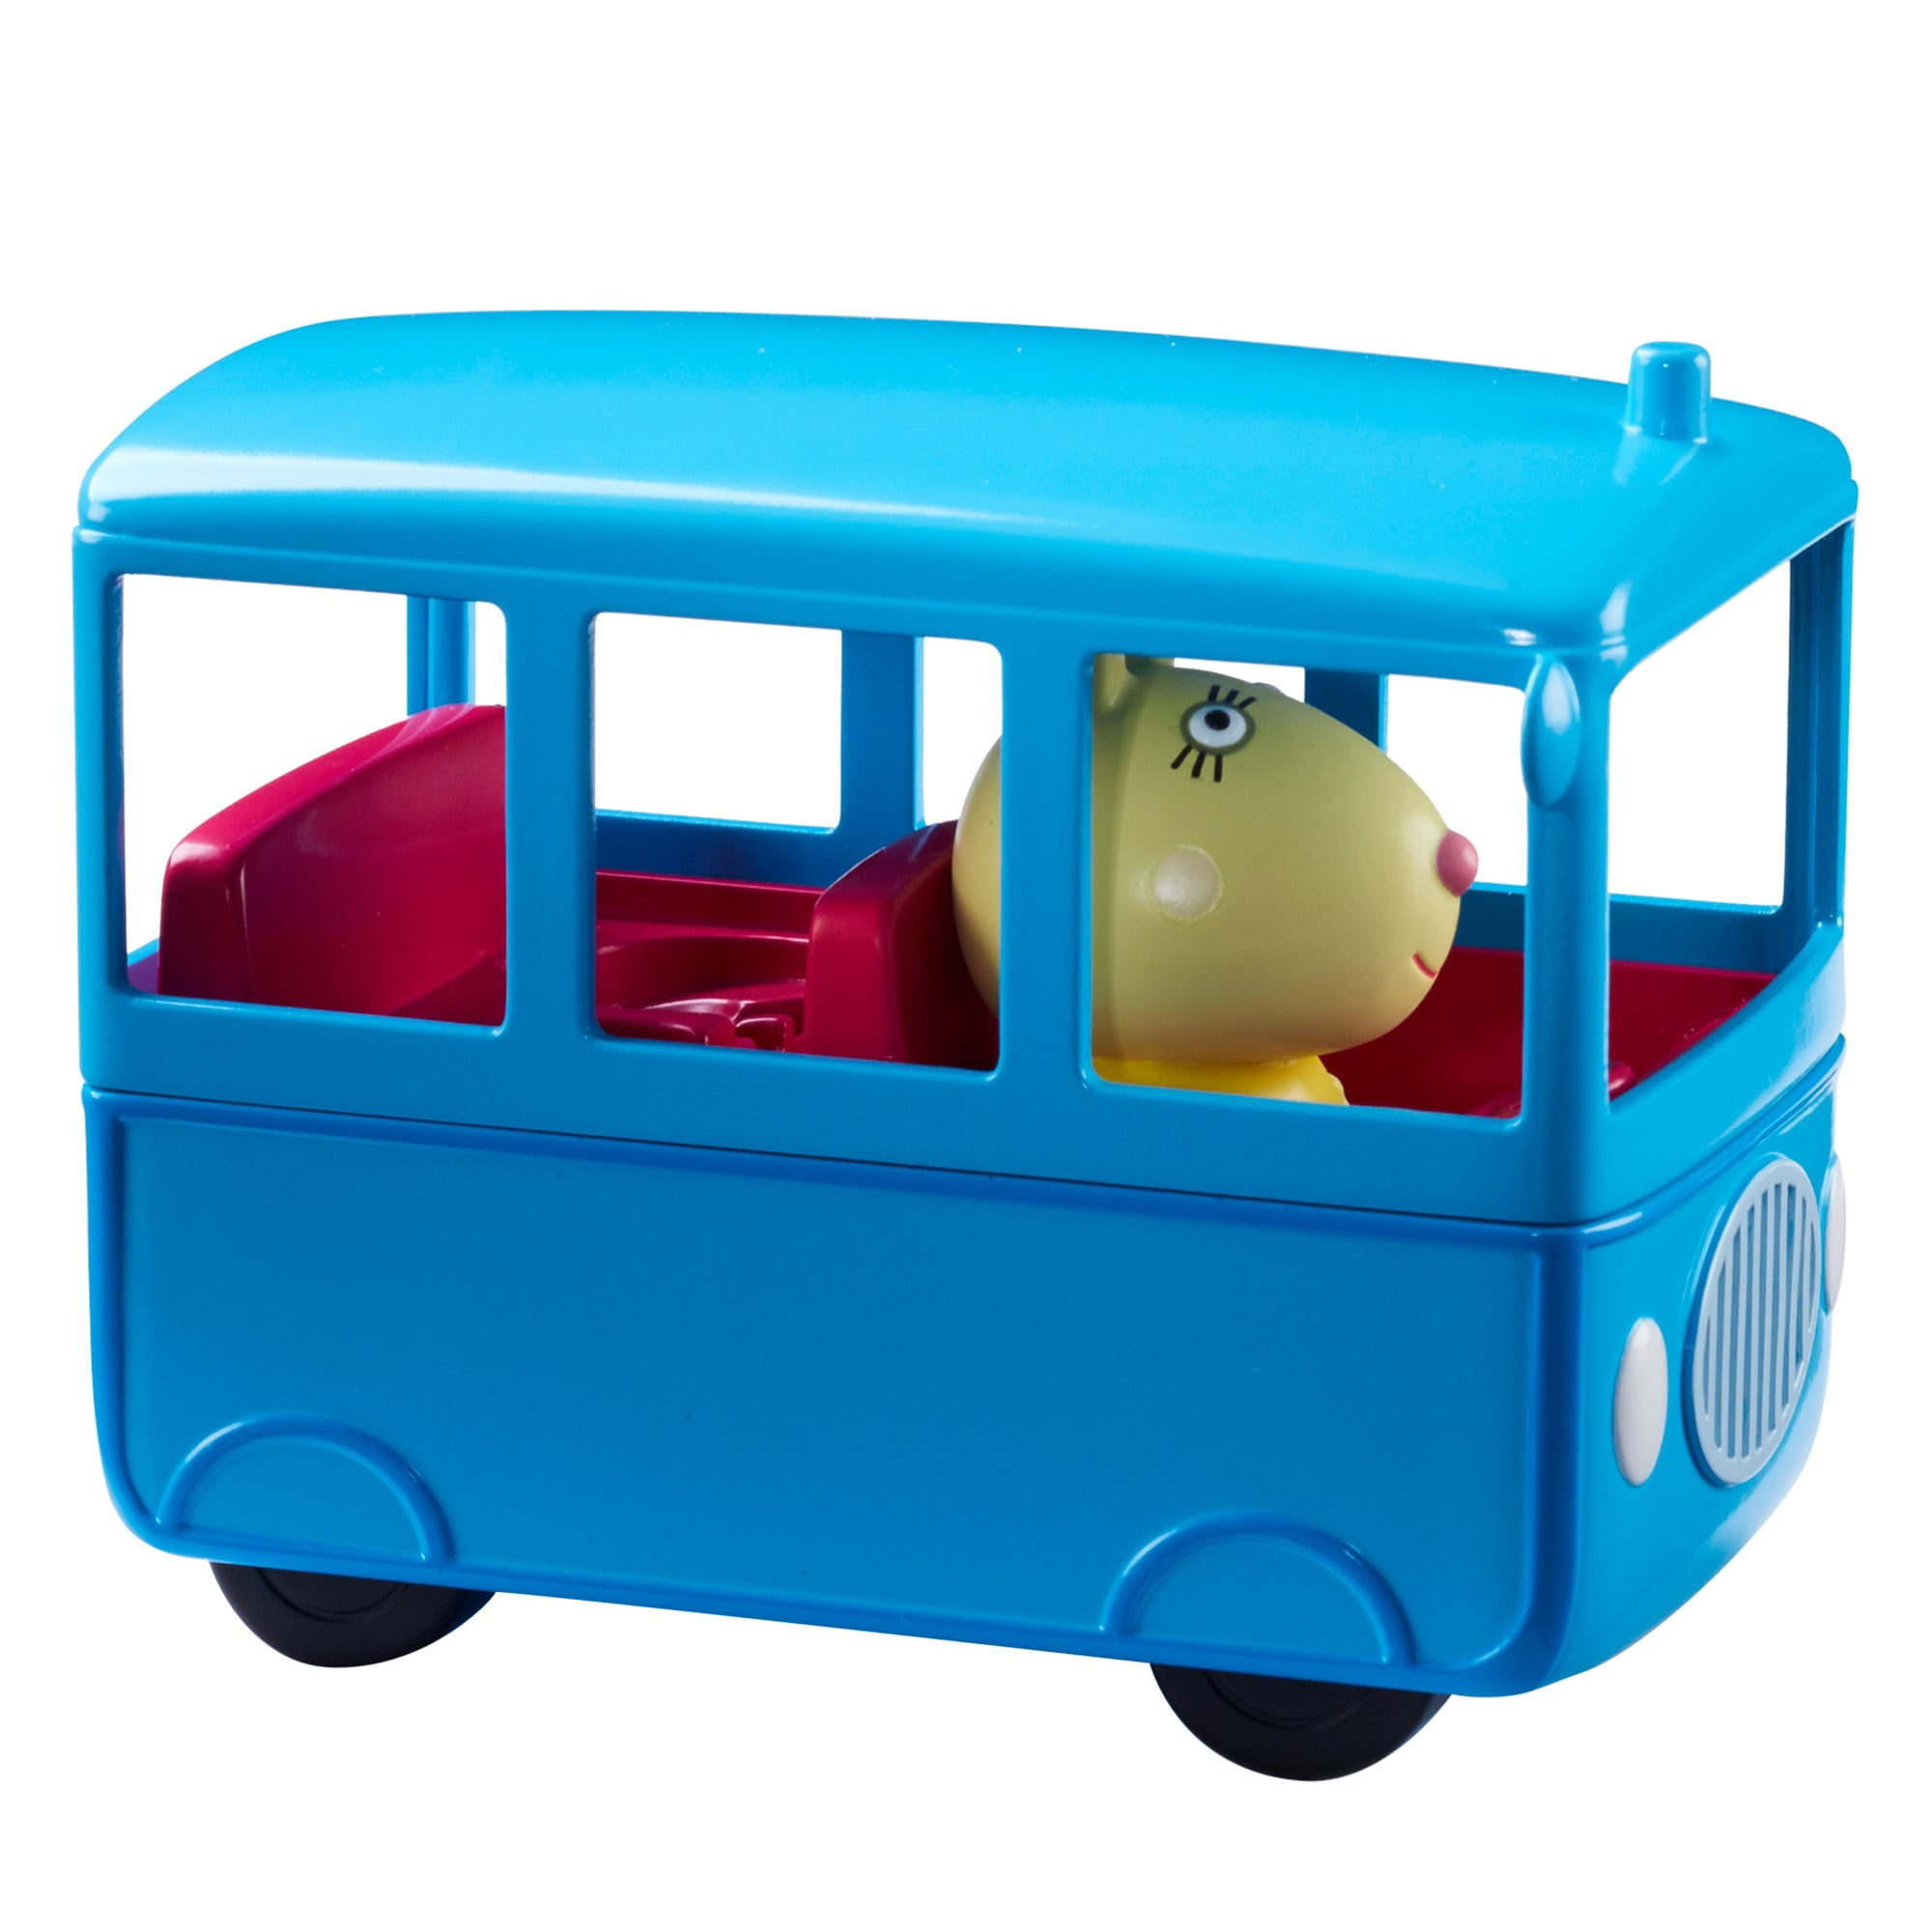 New Peppa Pig School Bus Playset w// Miss Rabbit Vehicle Official